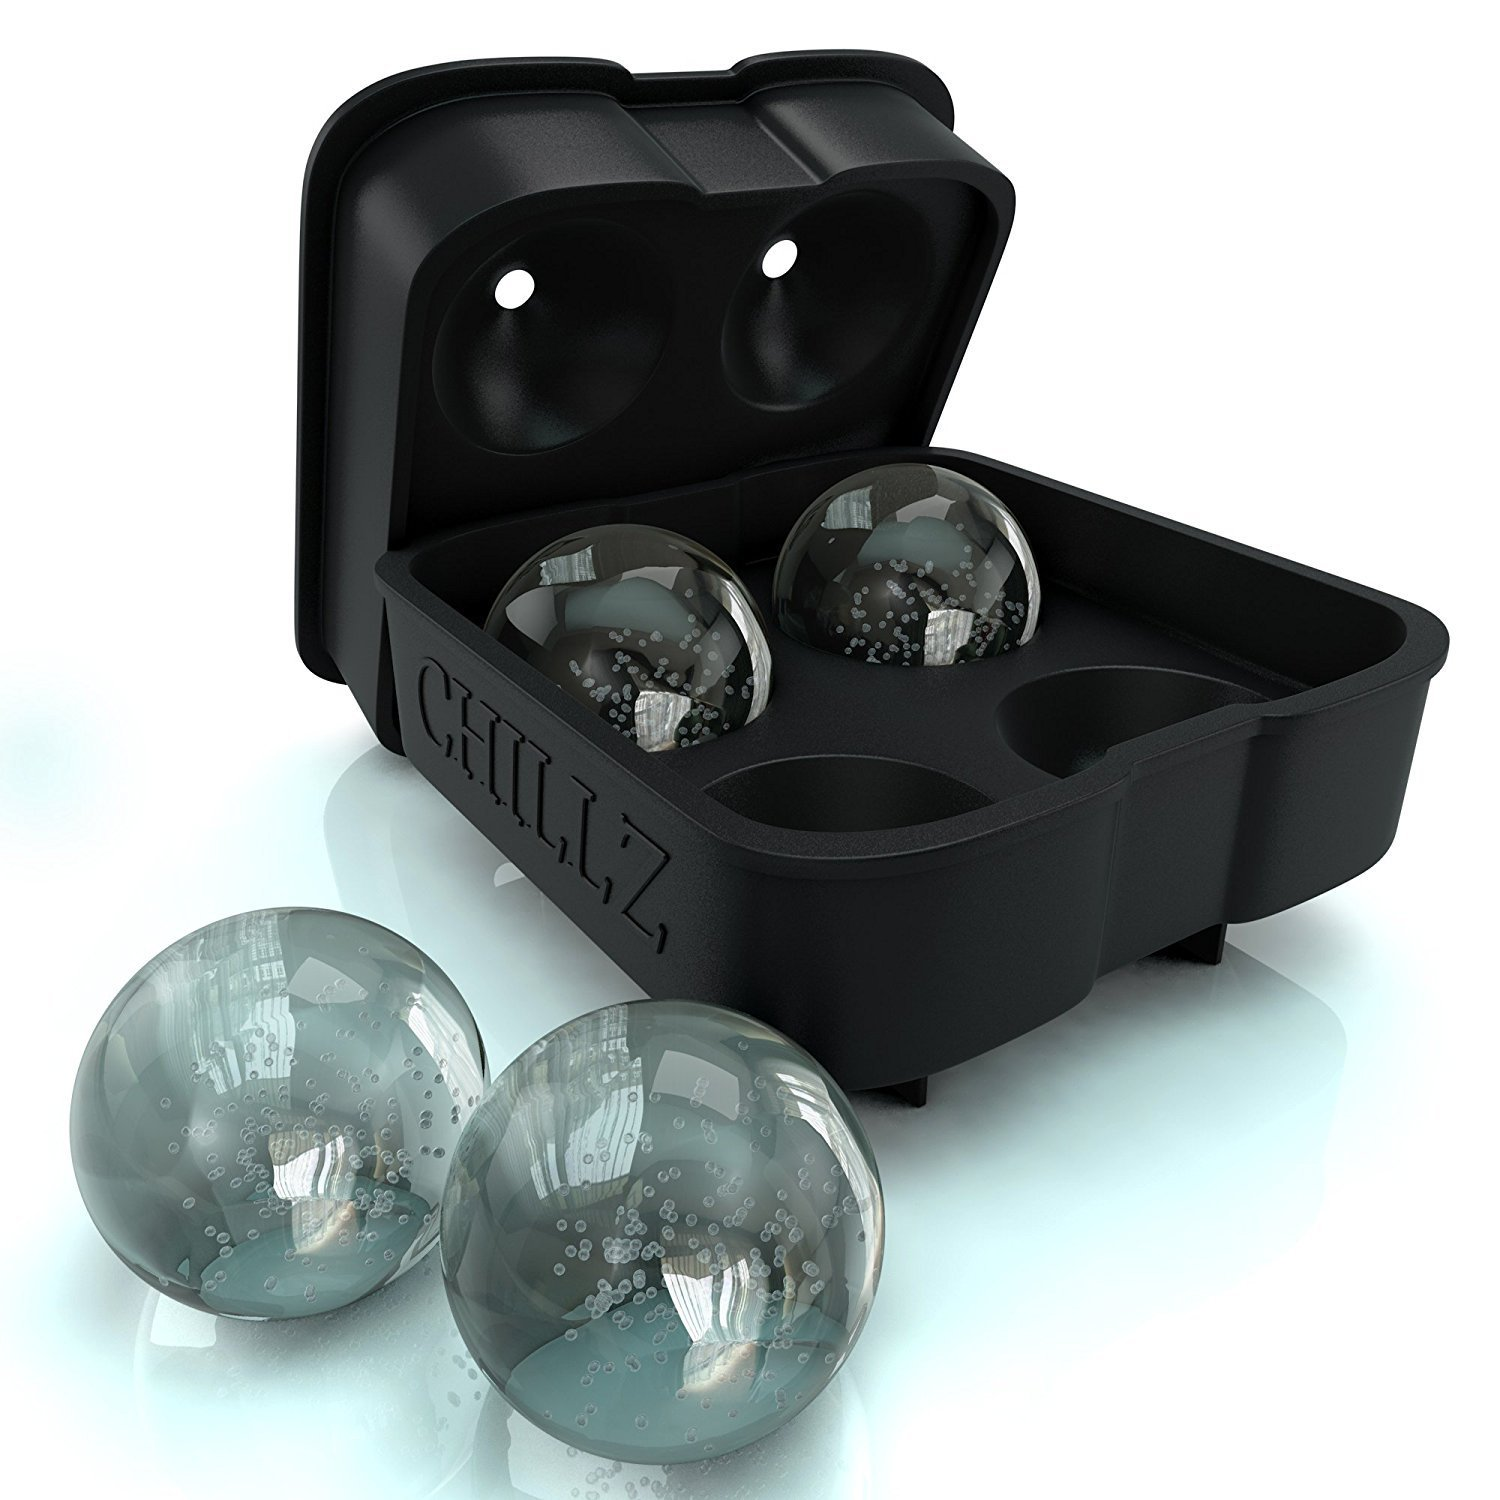 Chillz Ice Ball Maker Mold - Black Flexible Silicone Ice Tray - Molds 4 X 4.5cm Round Ice Ball Spher